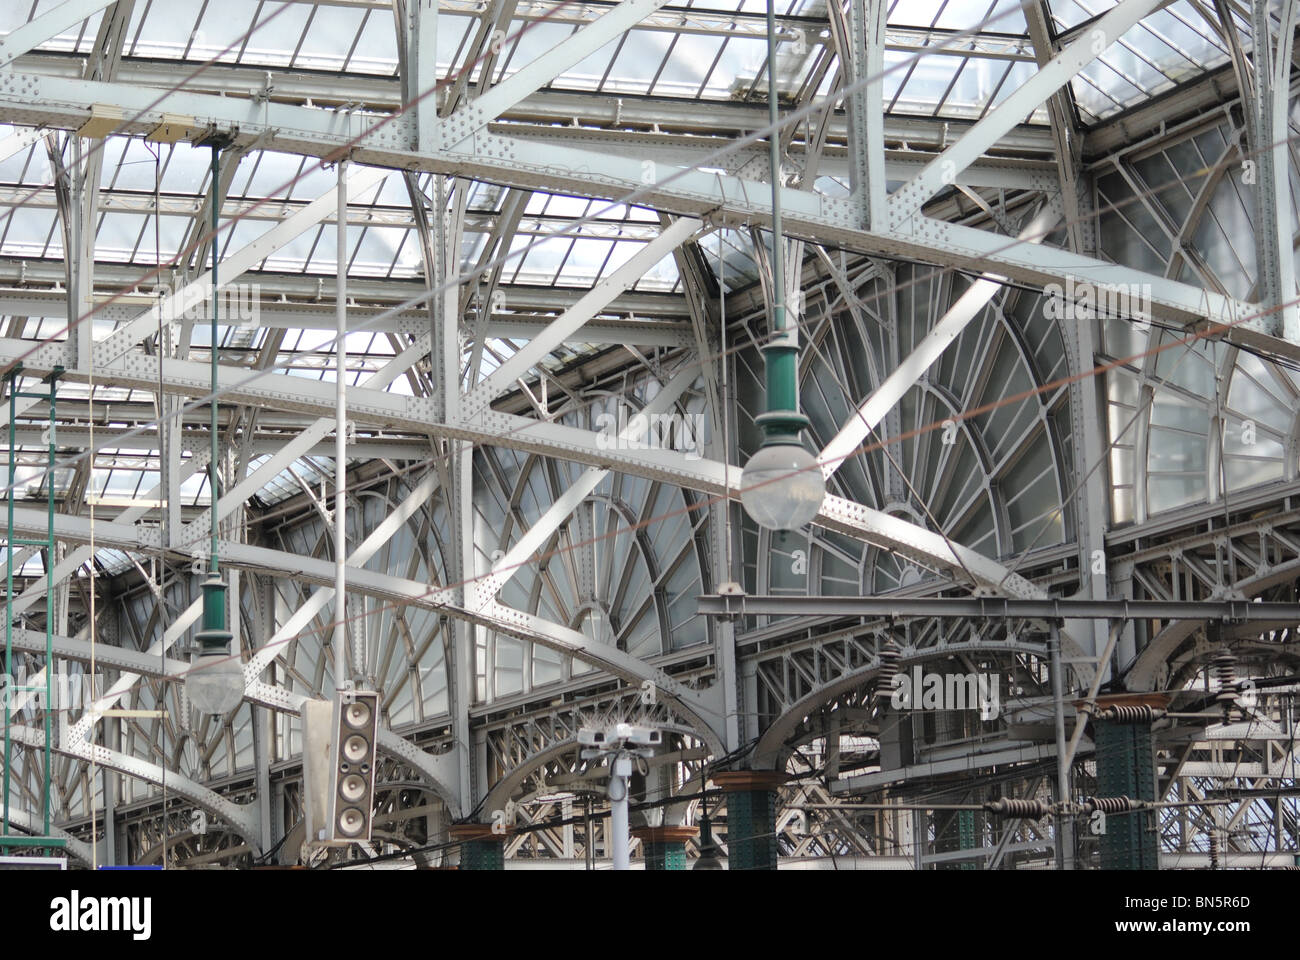 Internal Architecture - Glasgow Central Railway Station. - Stock Image